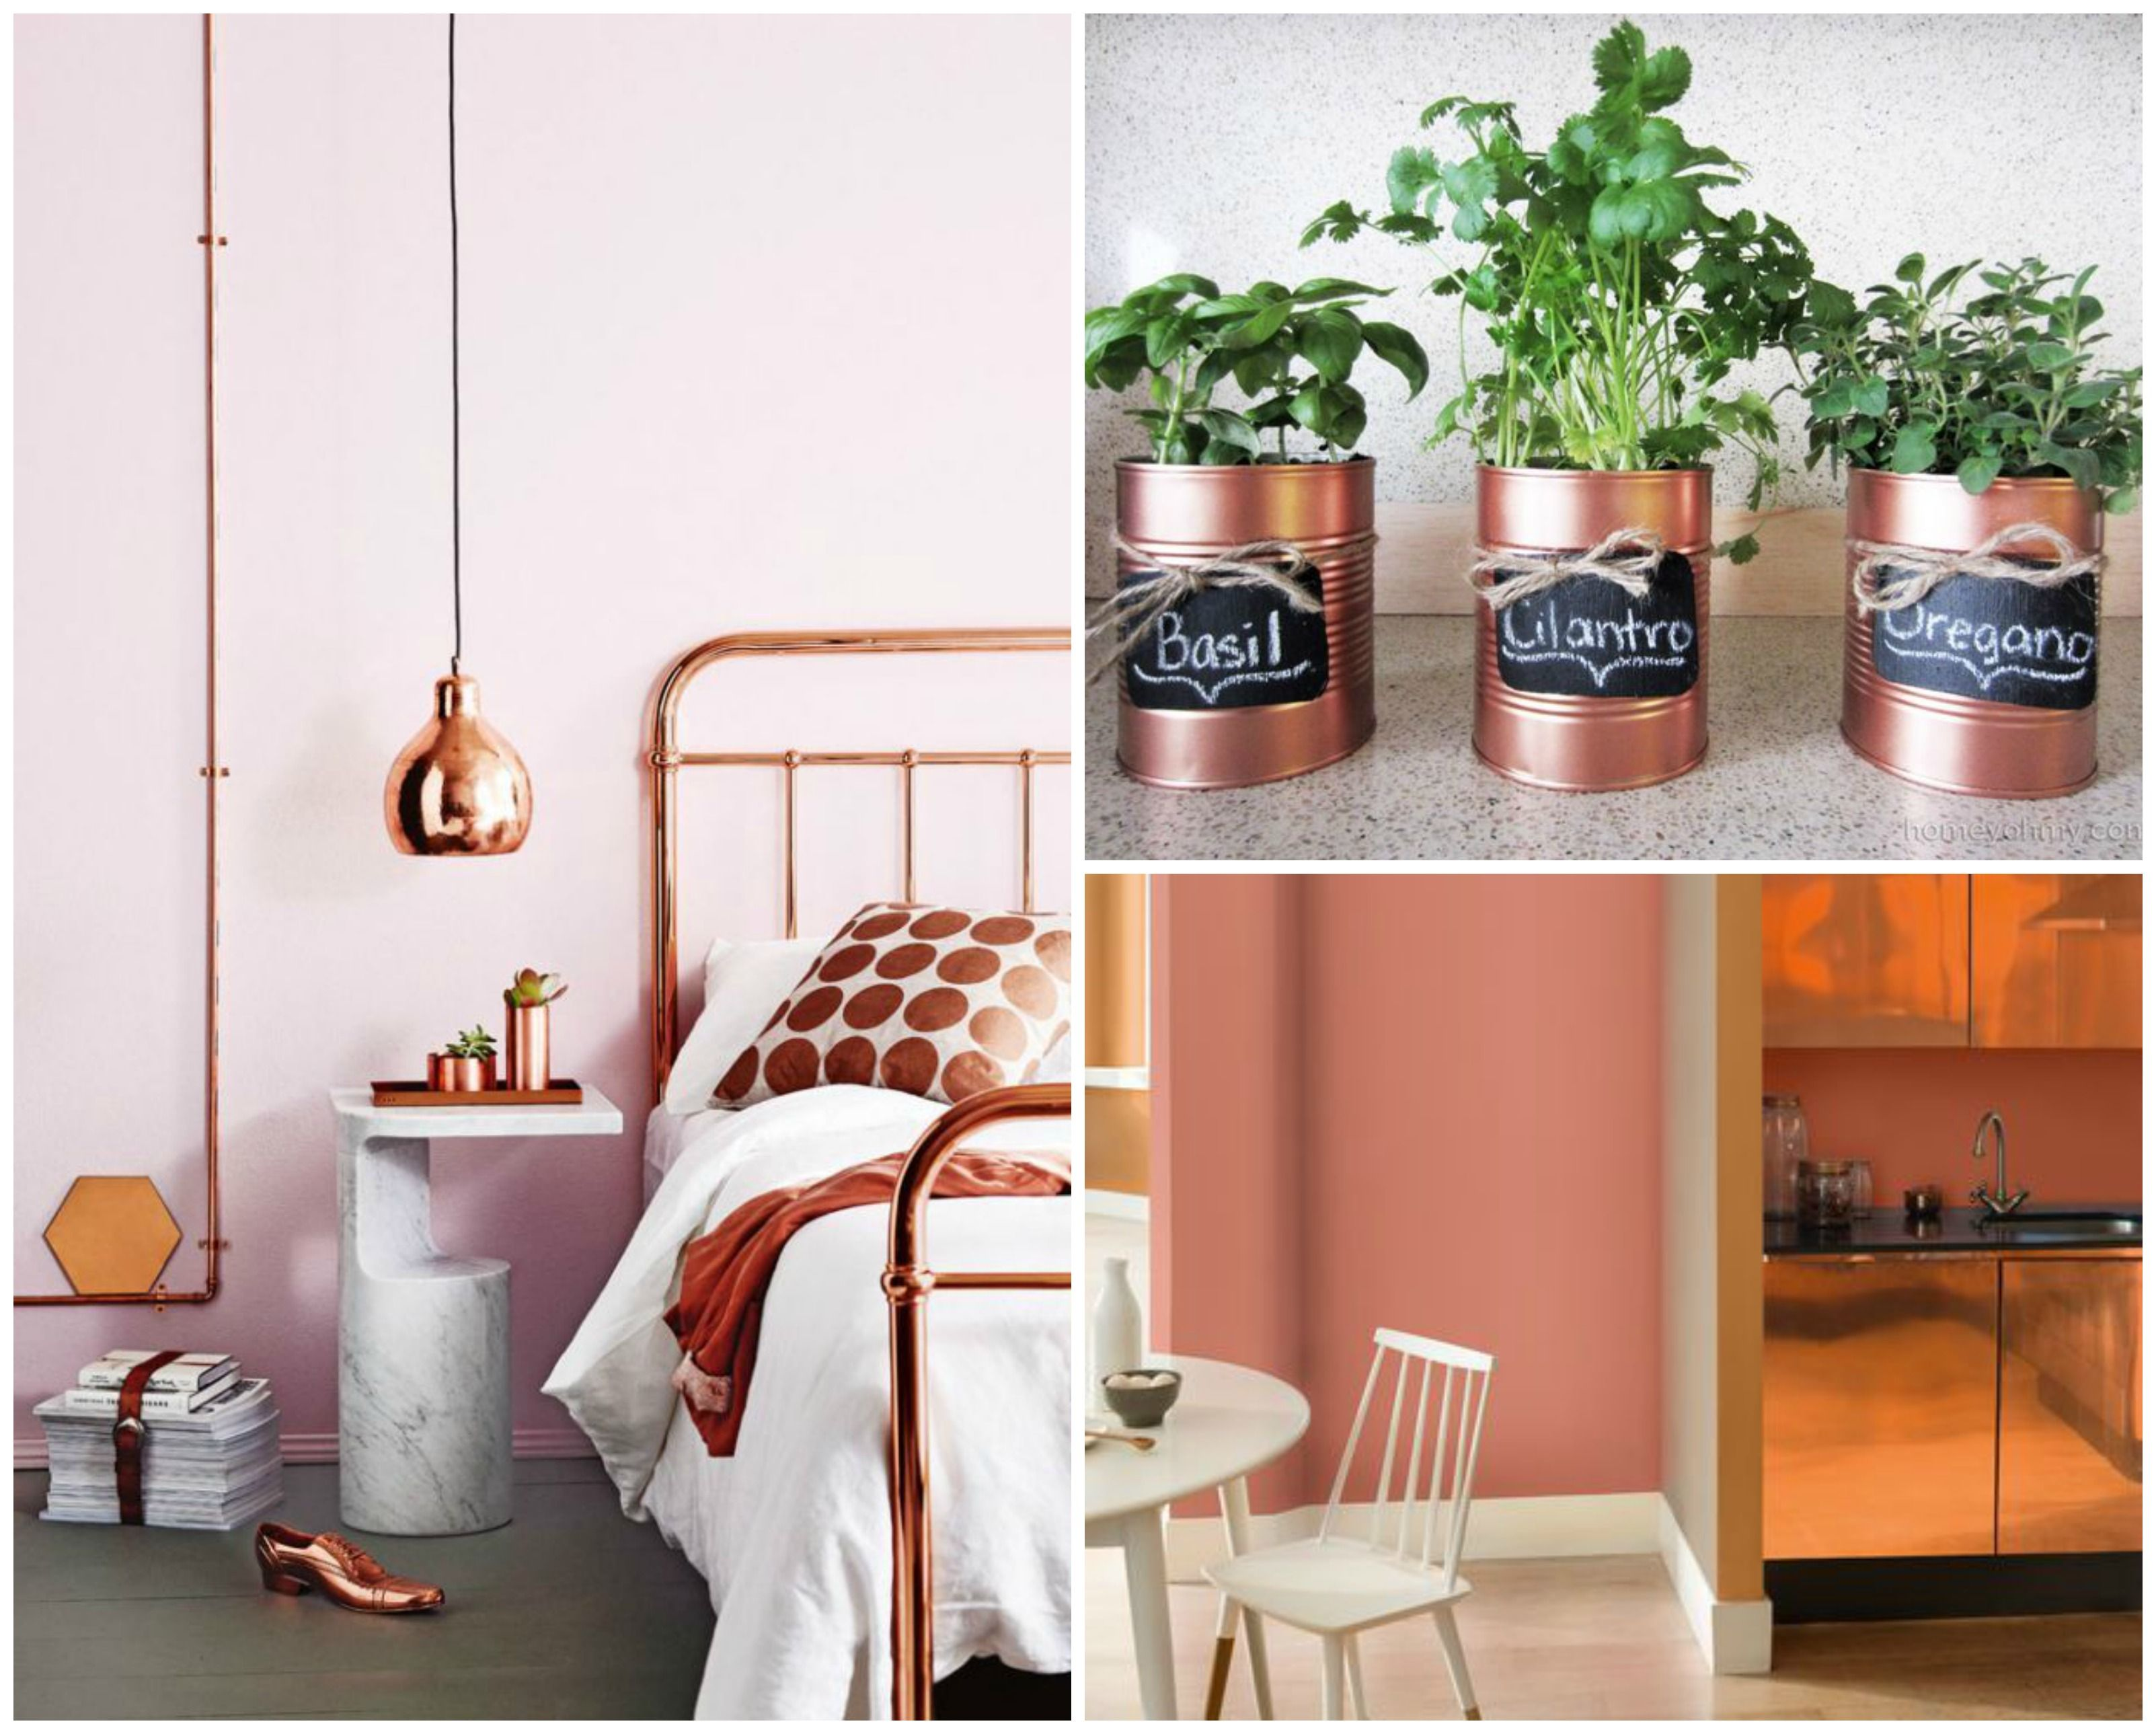 teale, copper and green decor | Home Decor Styles 2015 | Trend Home Design  And